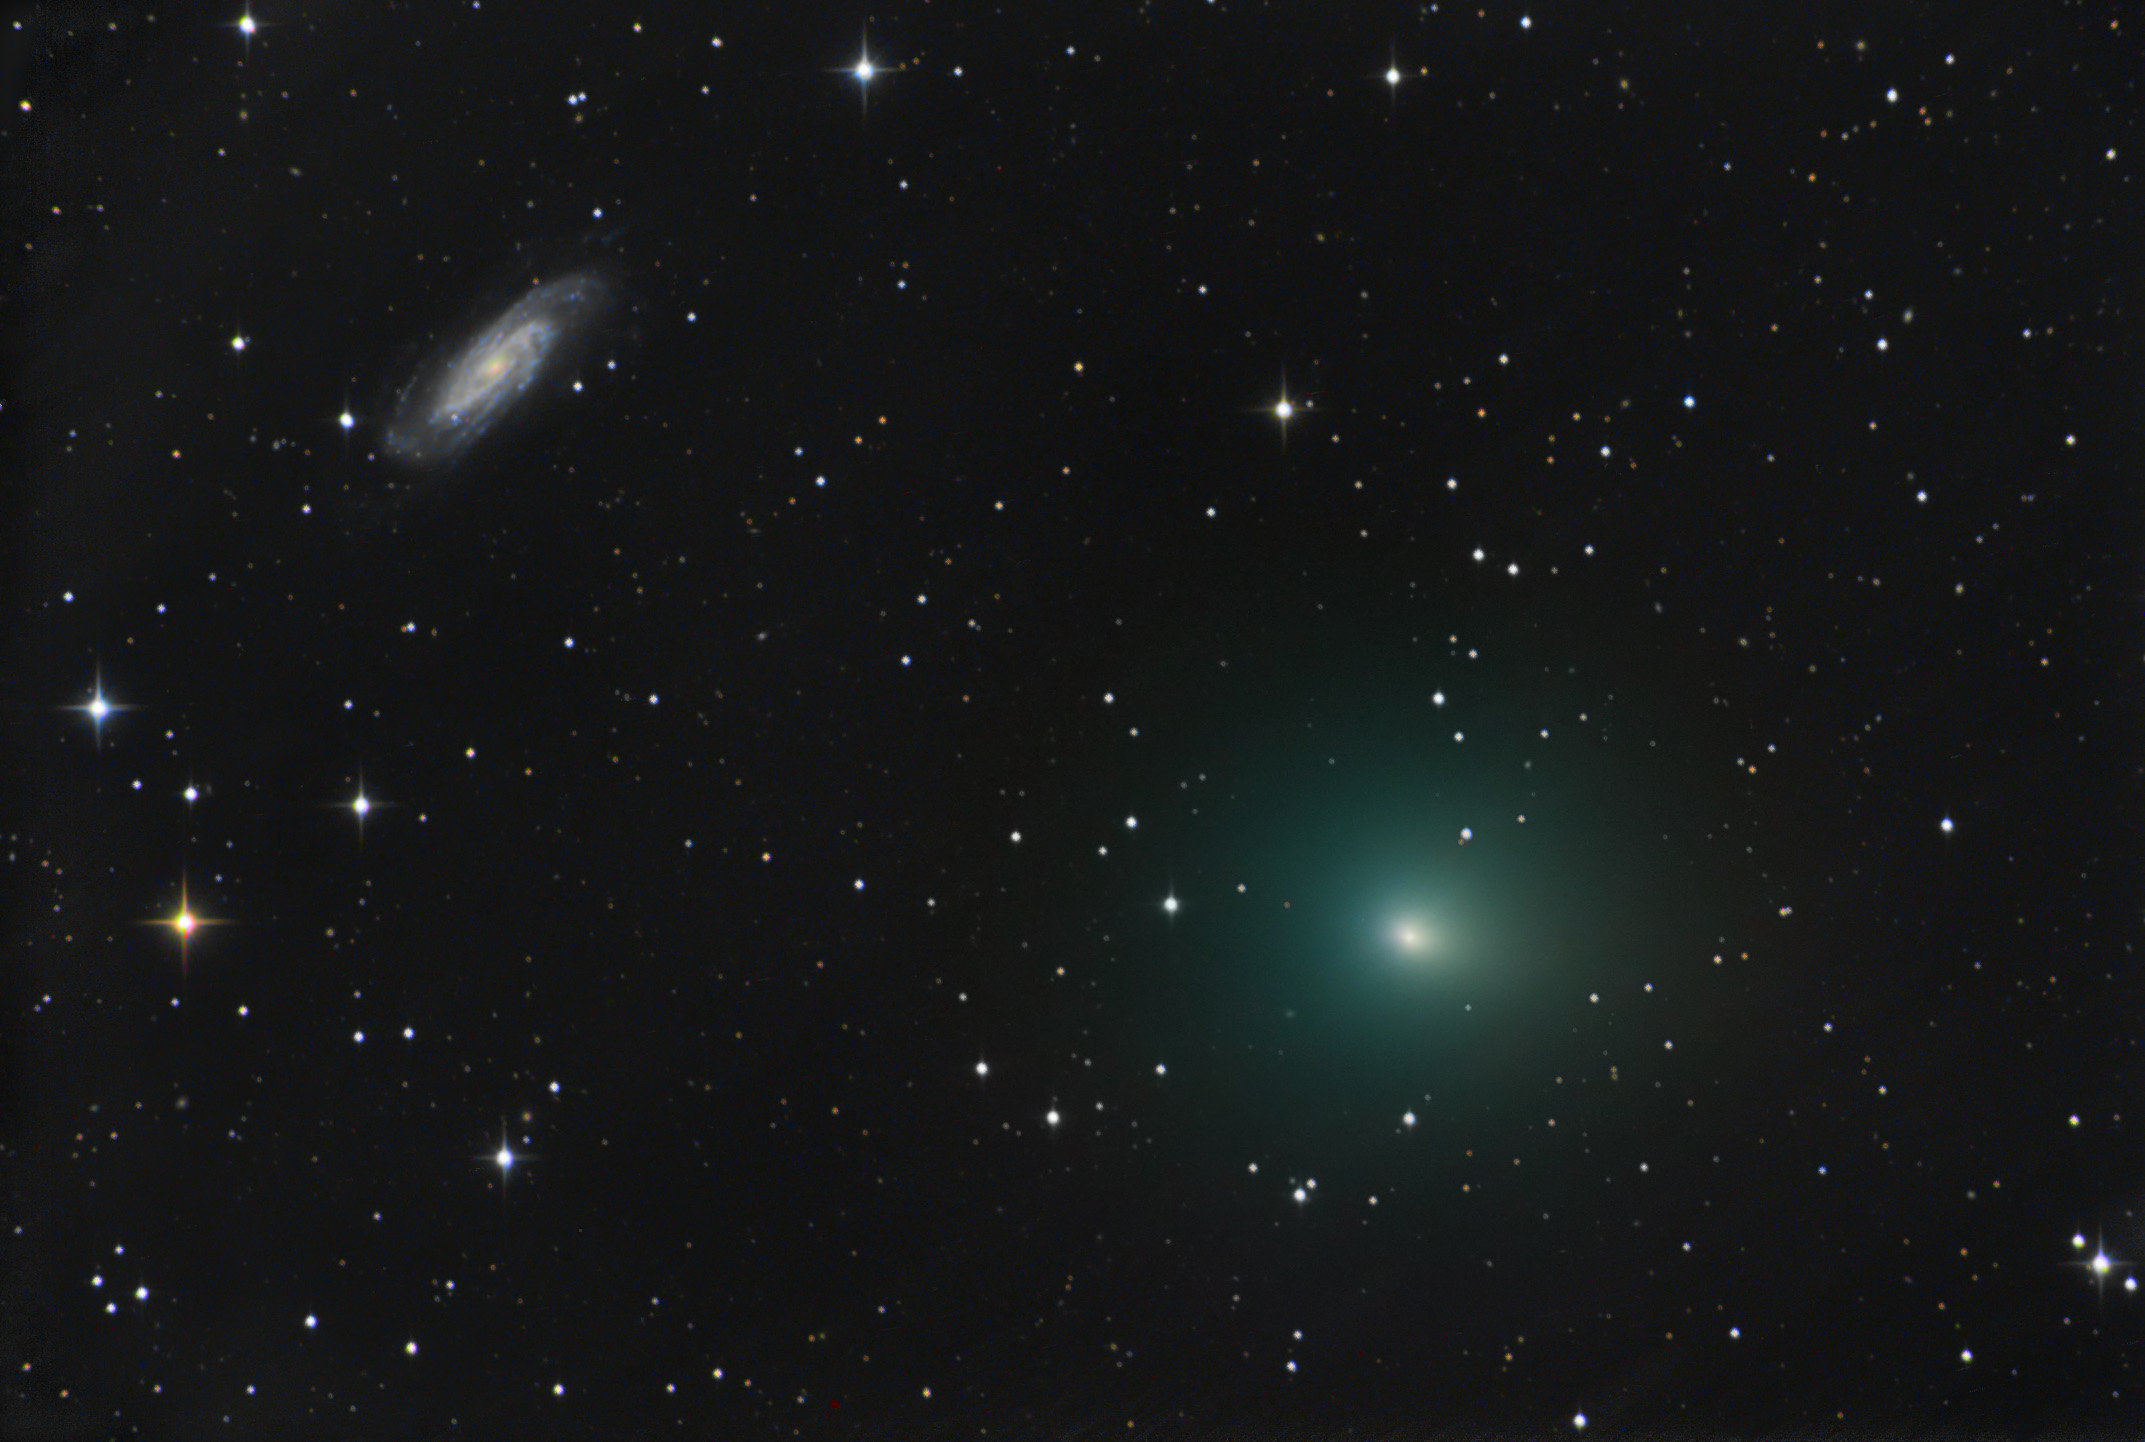 The SWIFT observatory observed a record change in the period of rotation of the comet 35